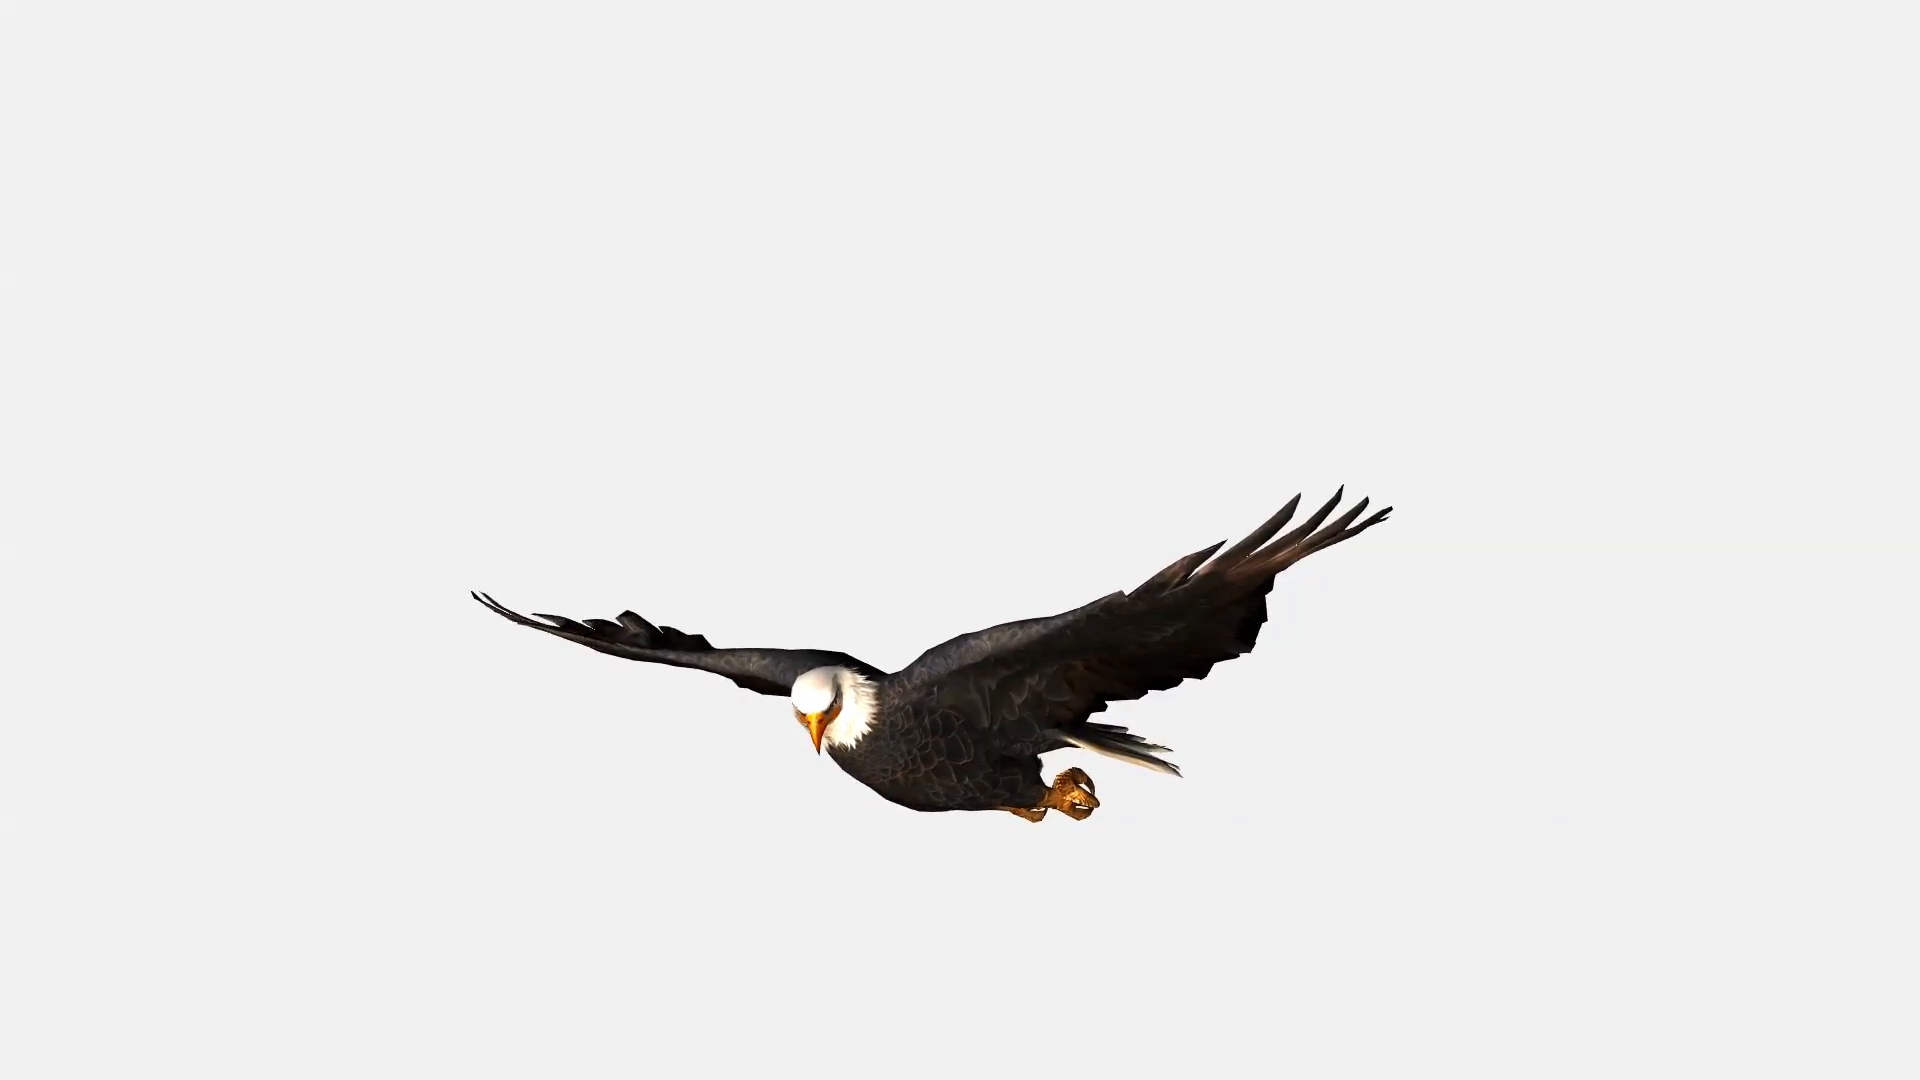 1920x1080 Bald Eagle Flying, Bird In Flight Isolated On White Background